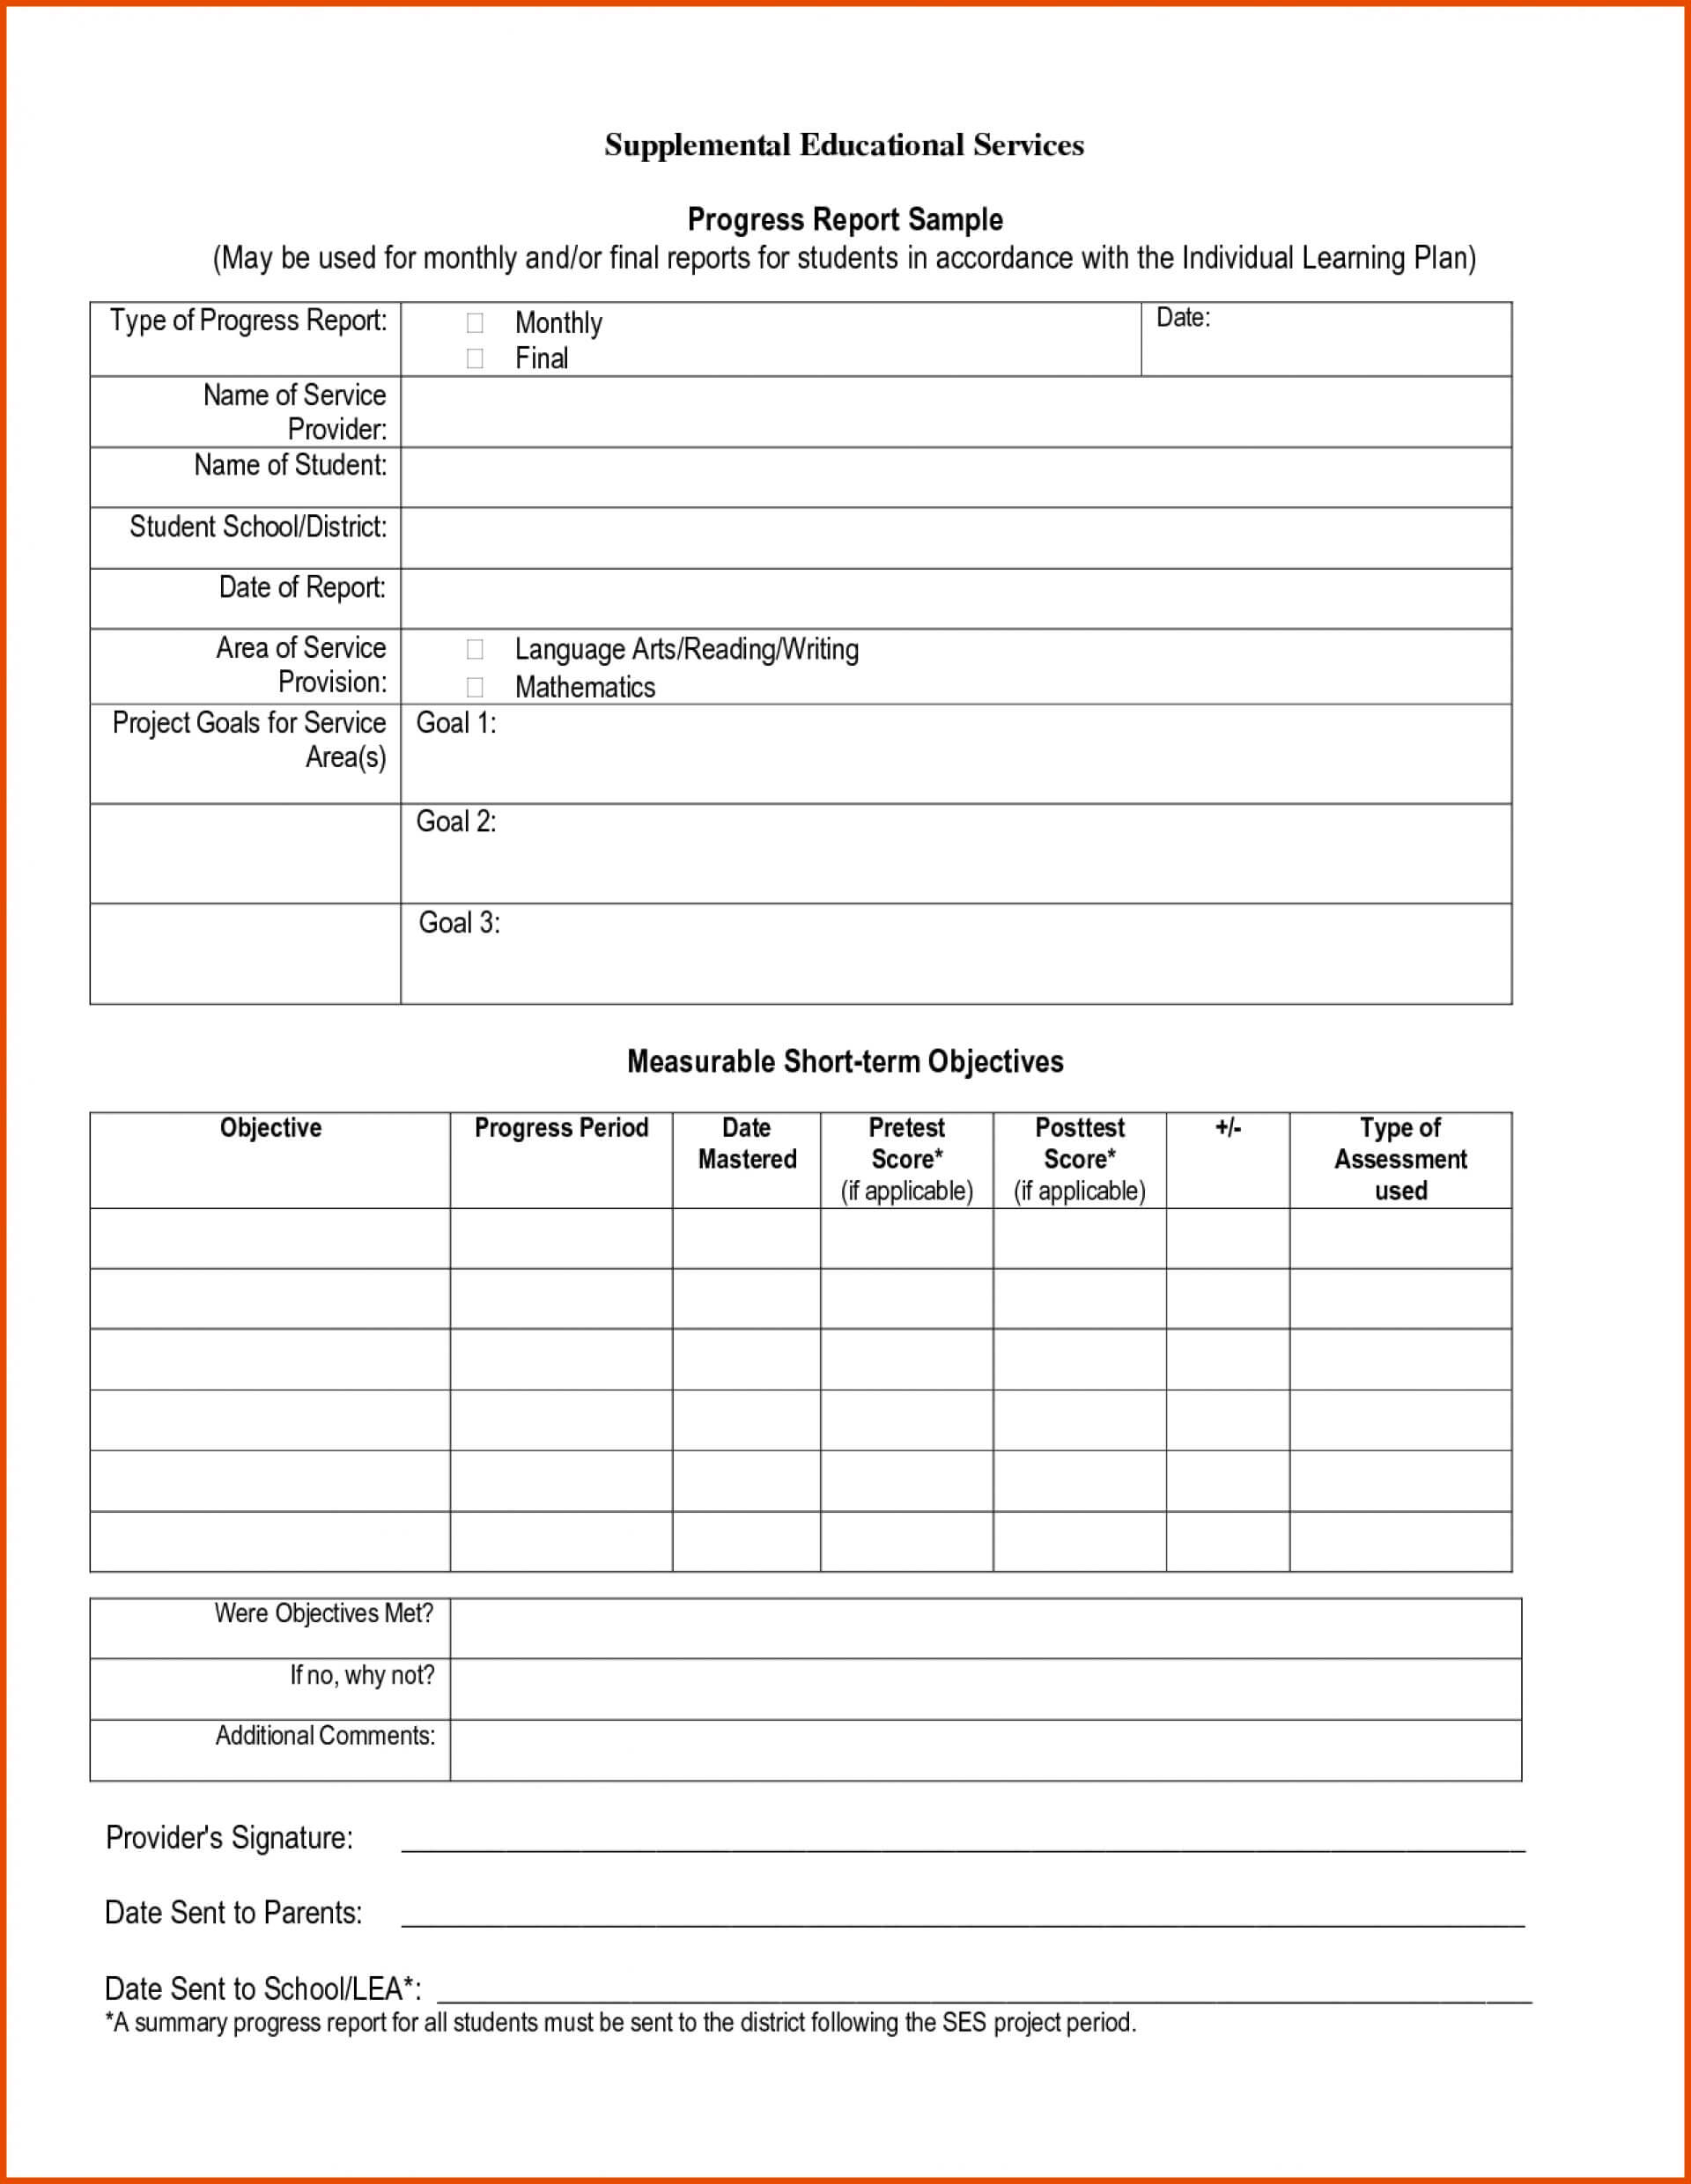 003 High School Report Card Template Atlca1 Magnificent Pertaining To High School Report Card Template